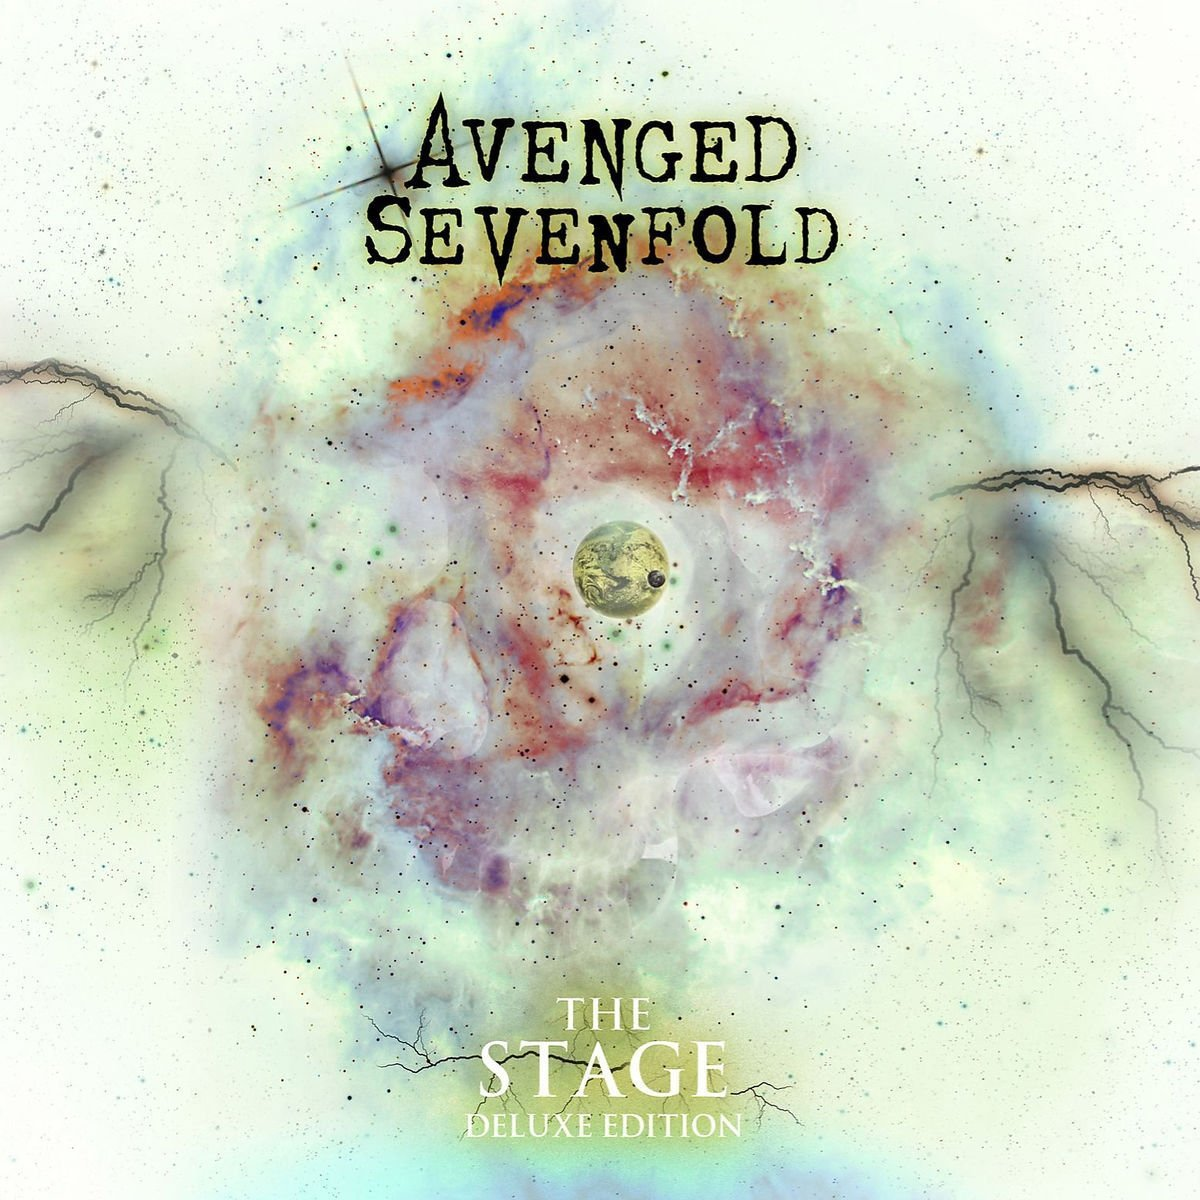 Avenged-Sevenfold-The-Stage-4-LP-152206536